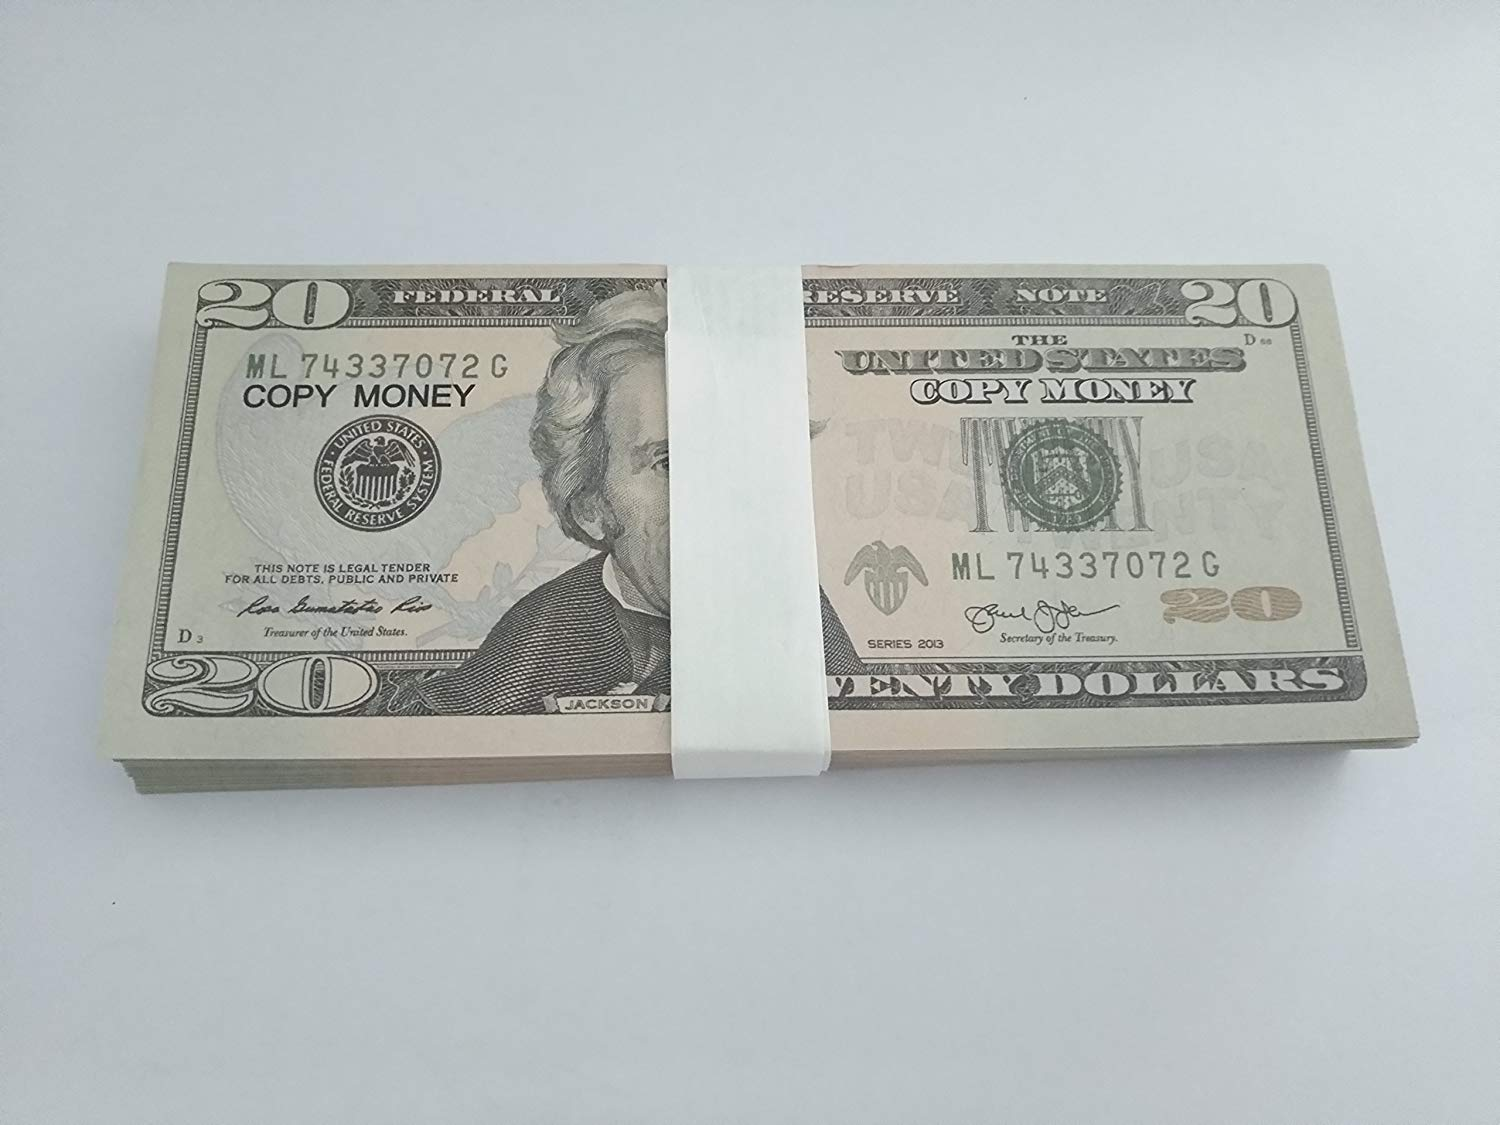 New Style $20s Full Print Prop Money $4,000 Package